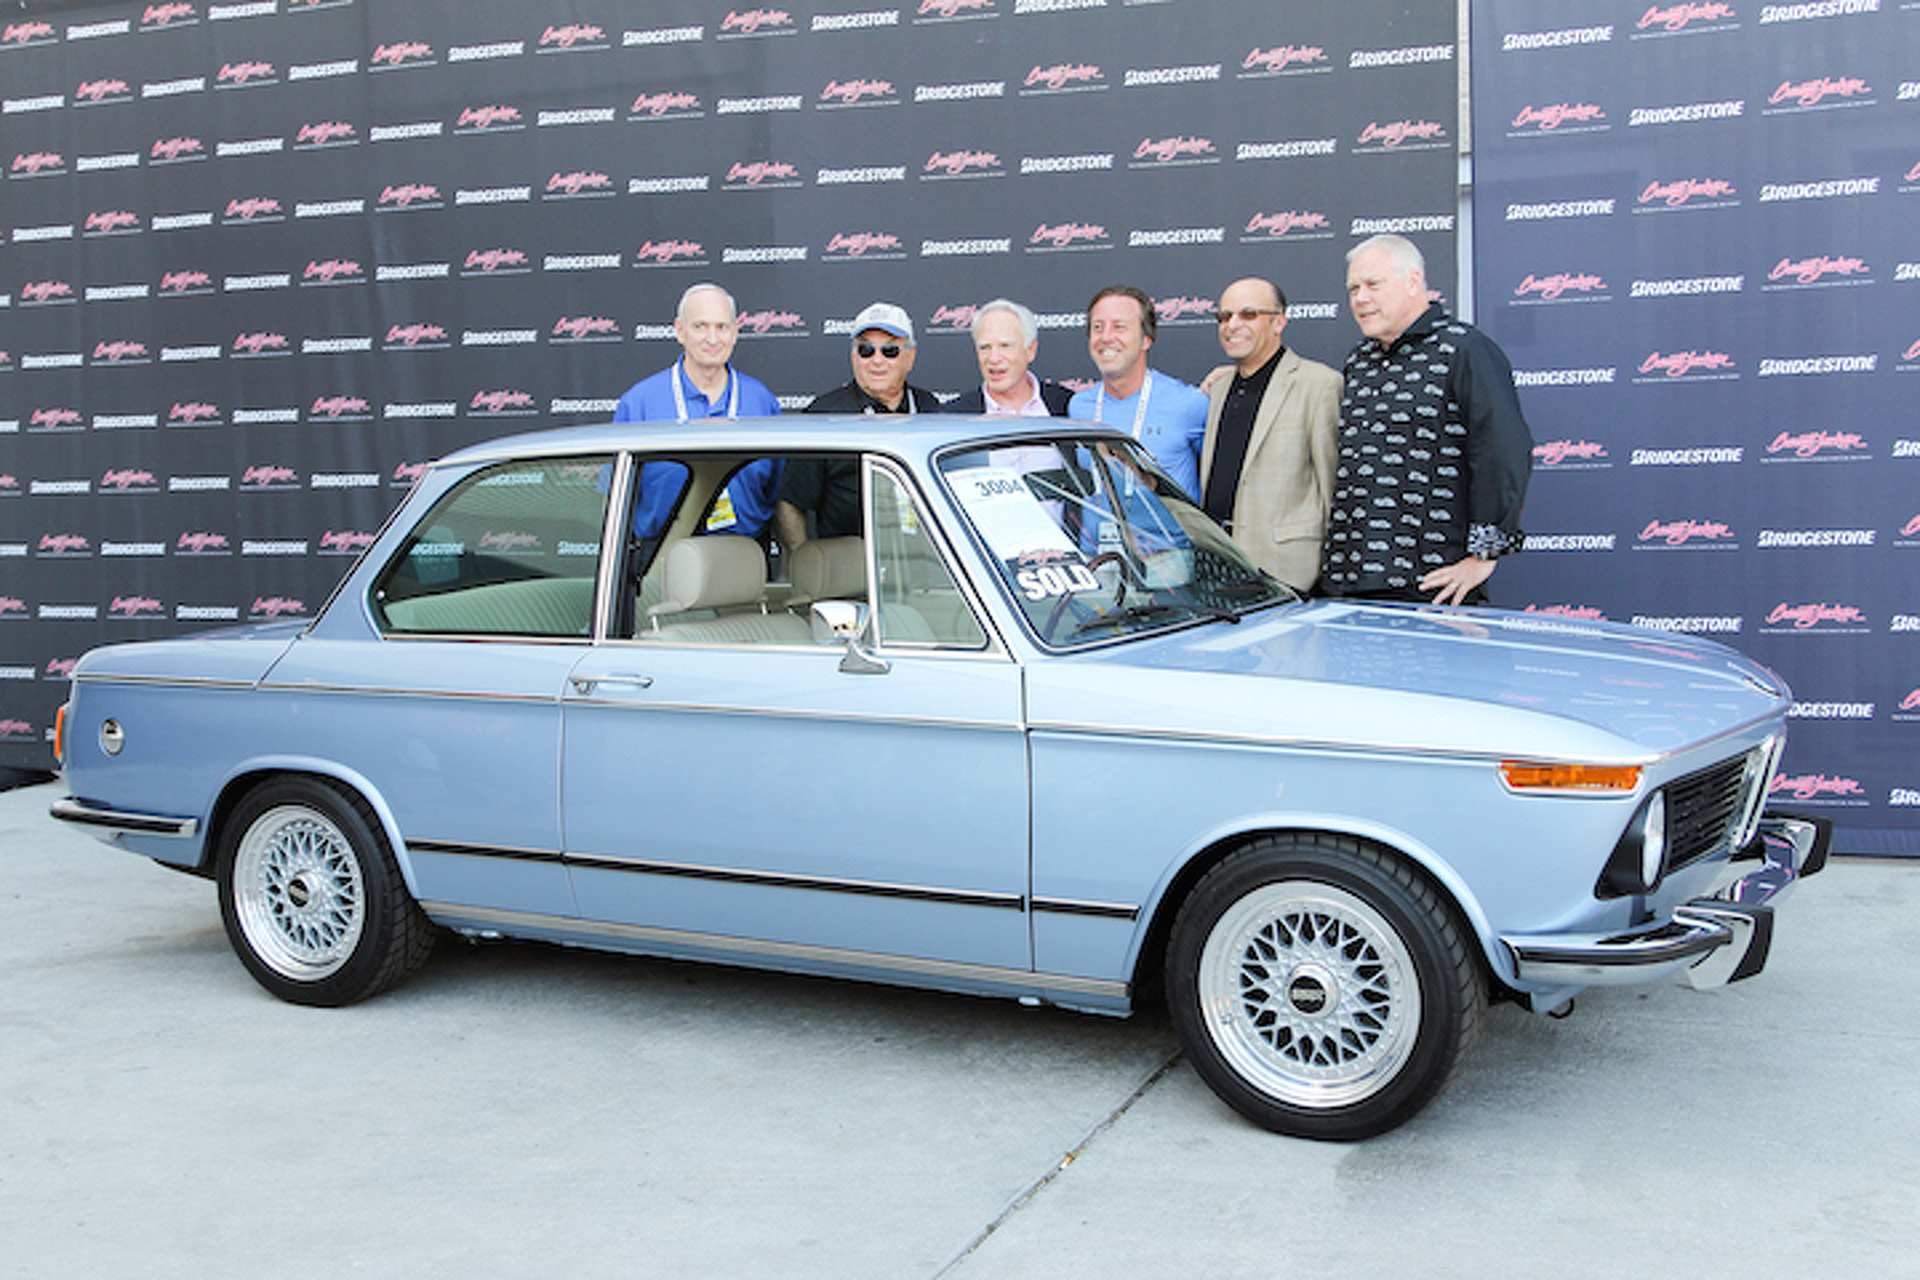 Clarion Builds BMW 2002 Raises $125,000 For Charity